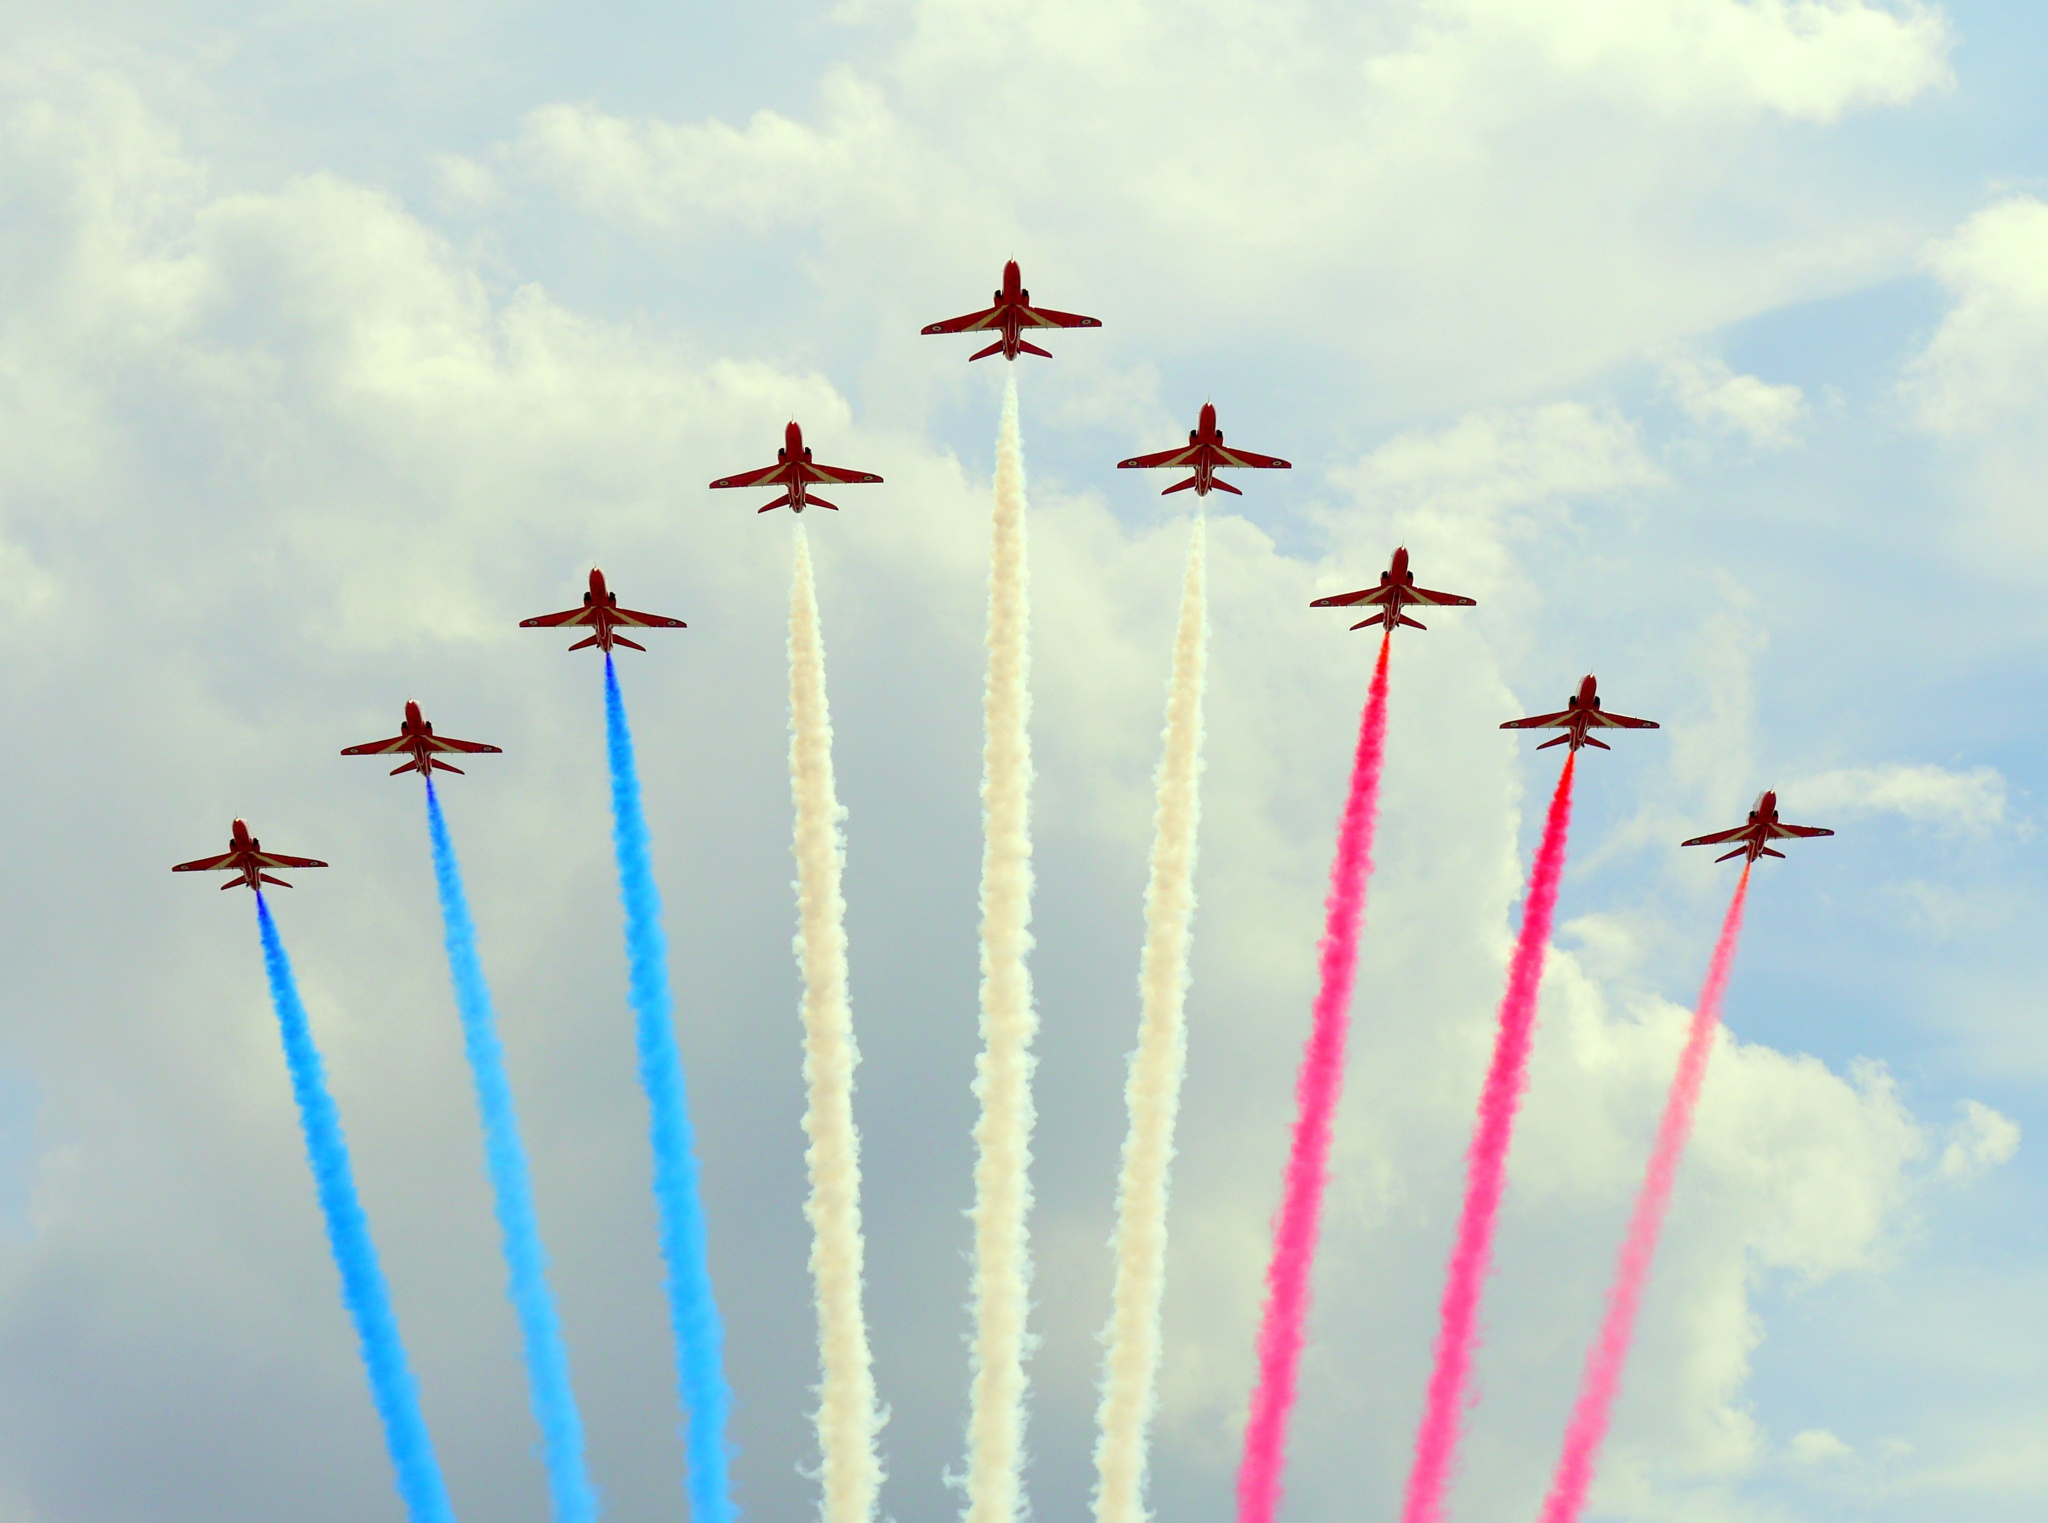 The Red Arrows by Seymour White